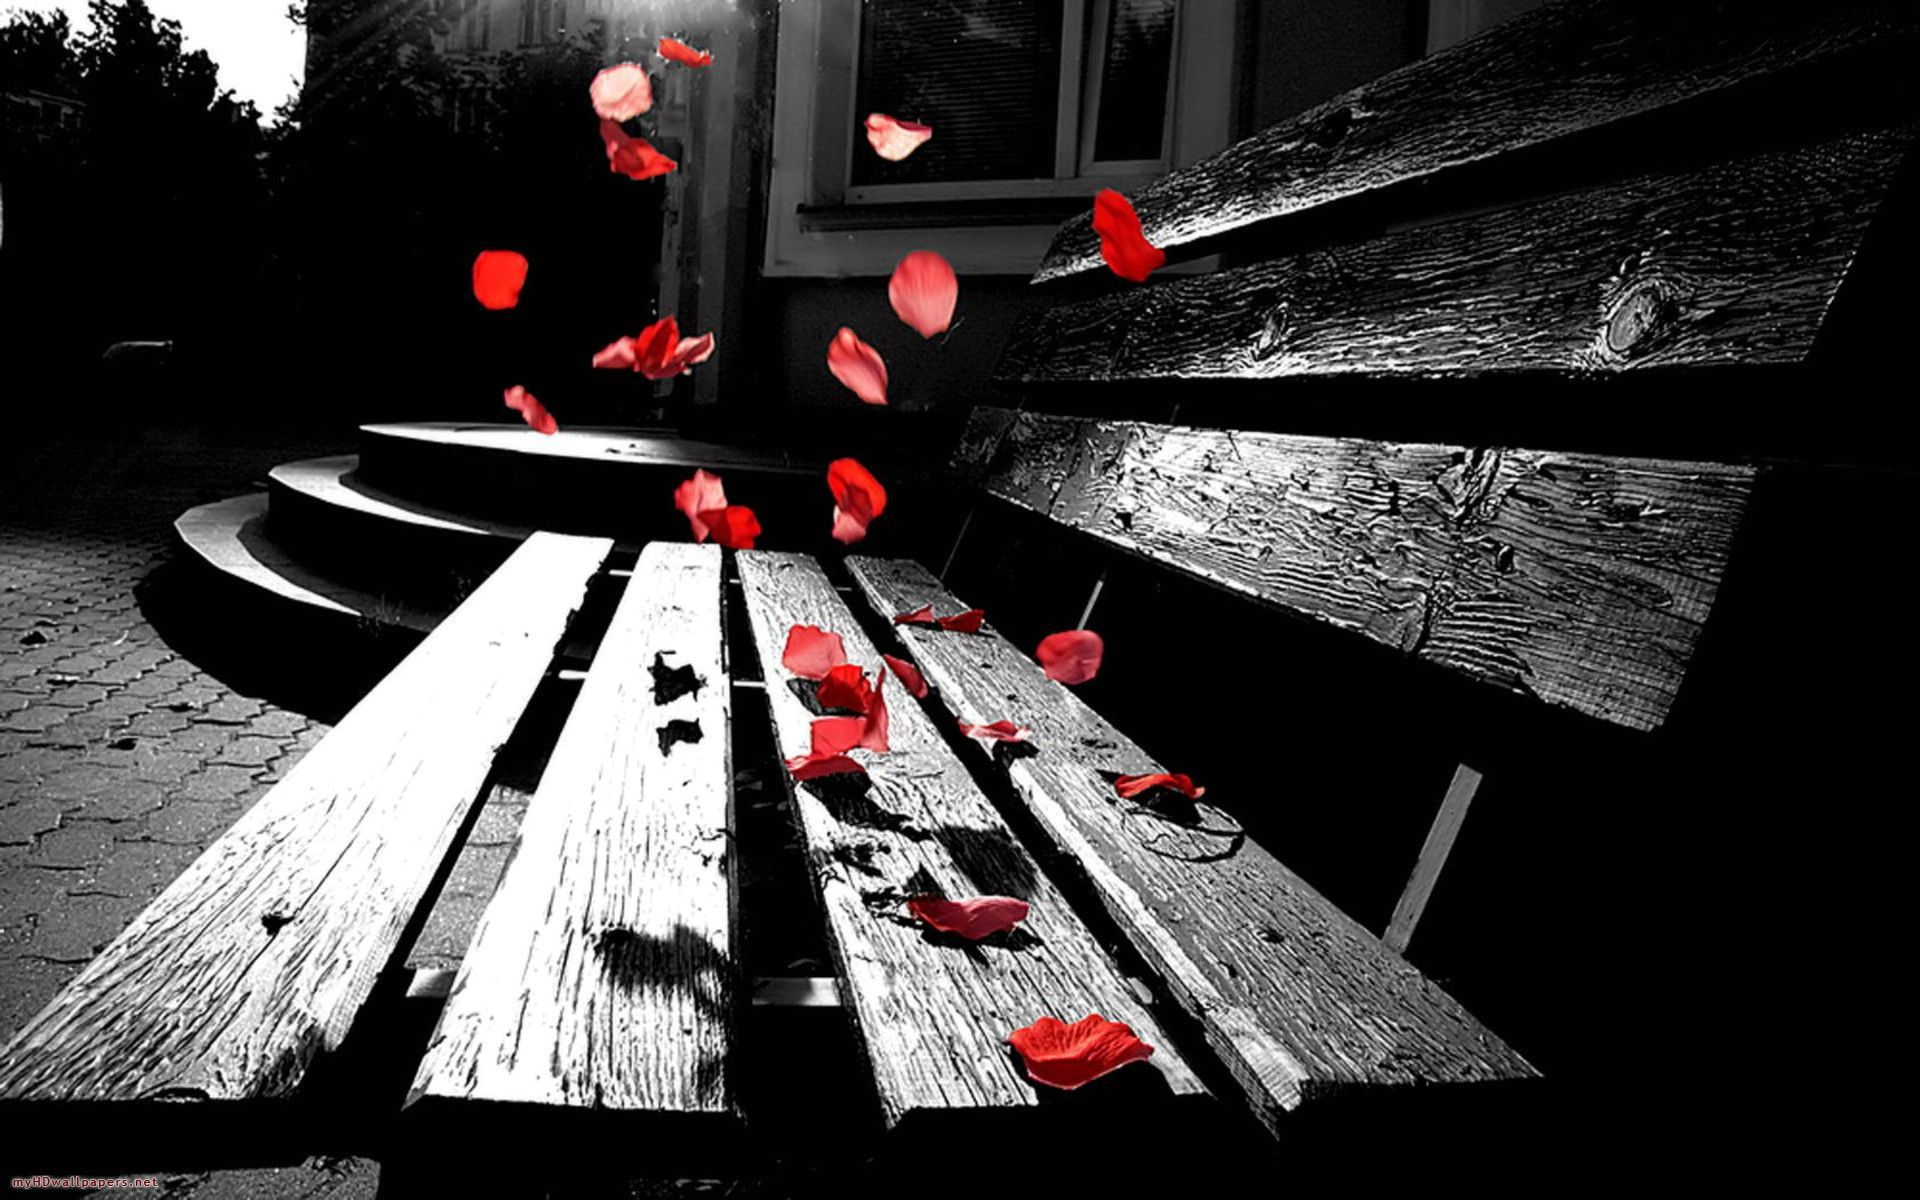 Full Hd Love Romantic Wallpaper For Computer Desktop Posted By Samantha Sellers